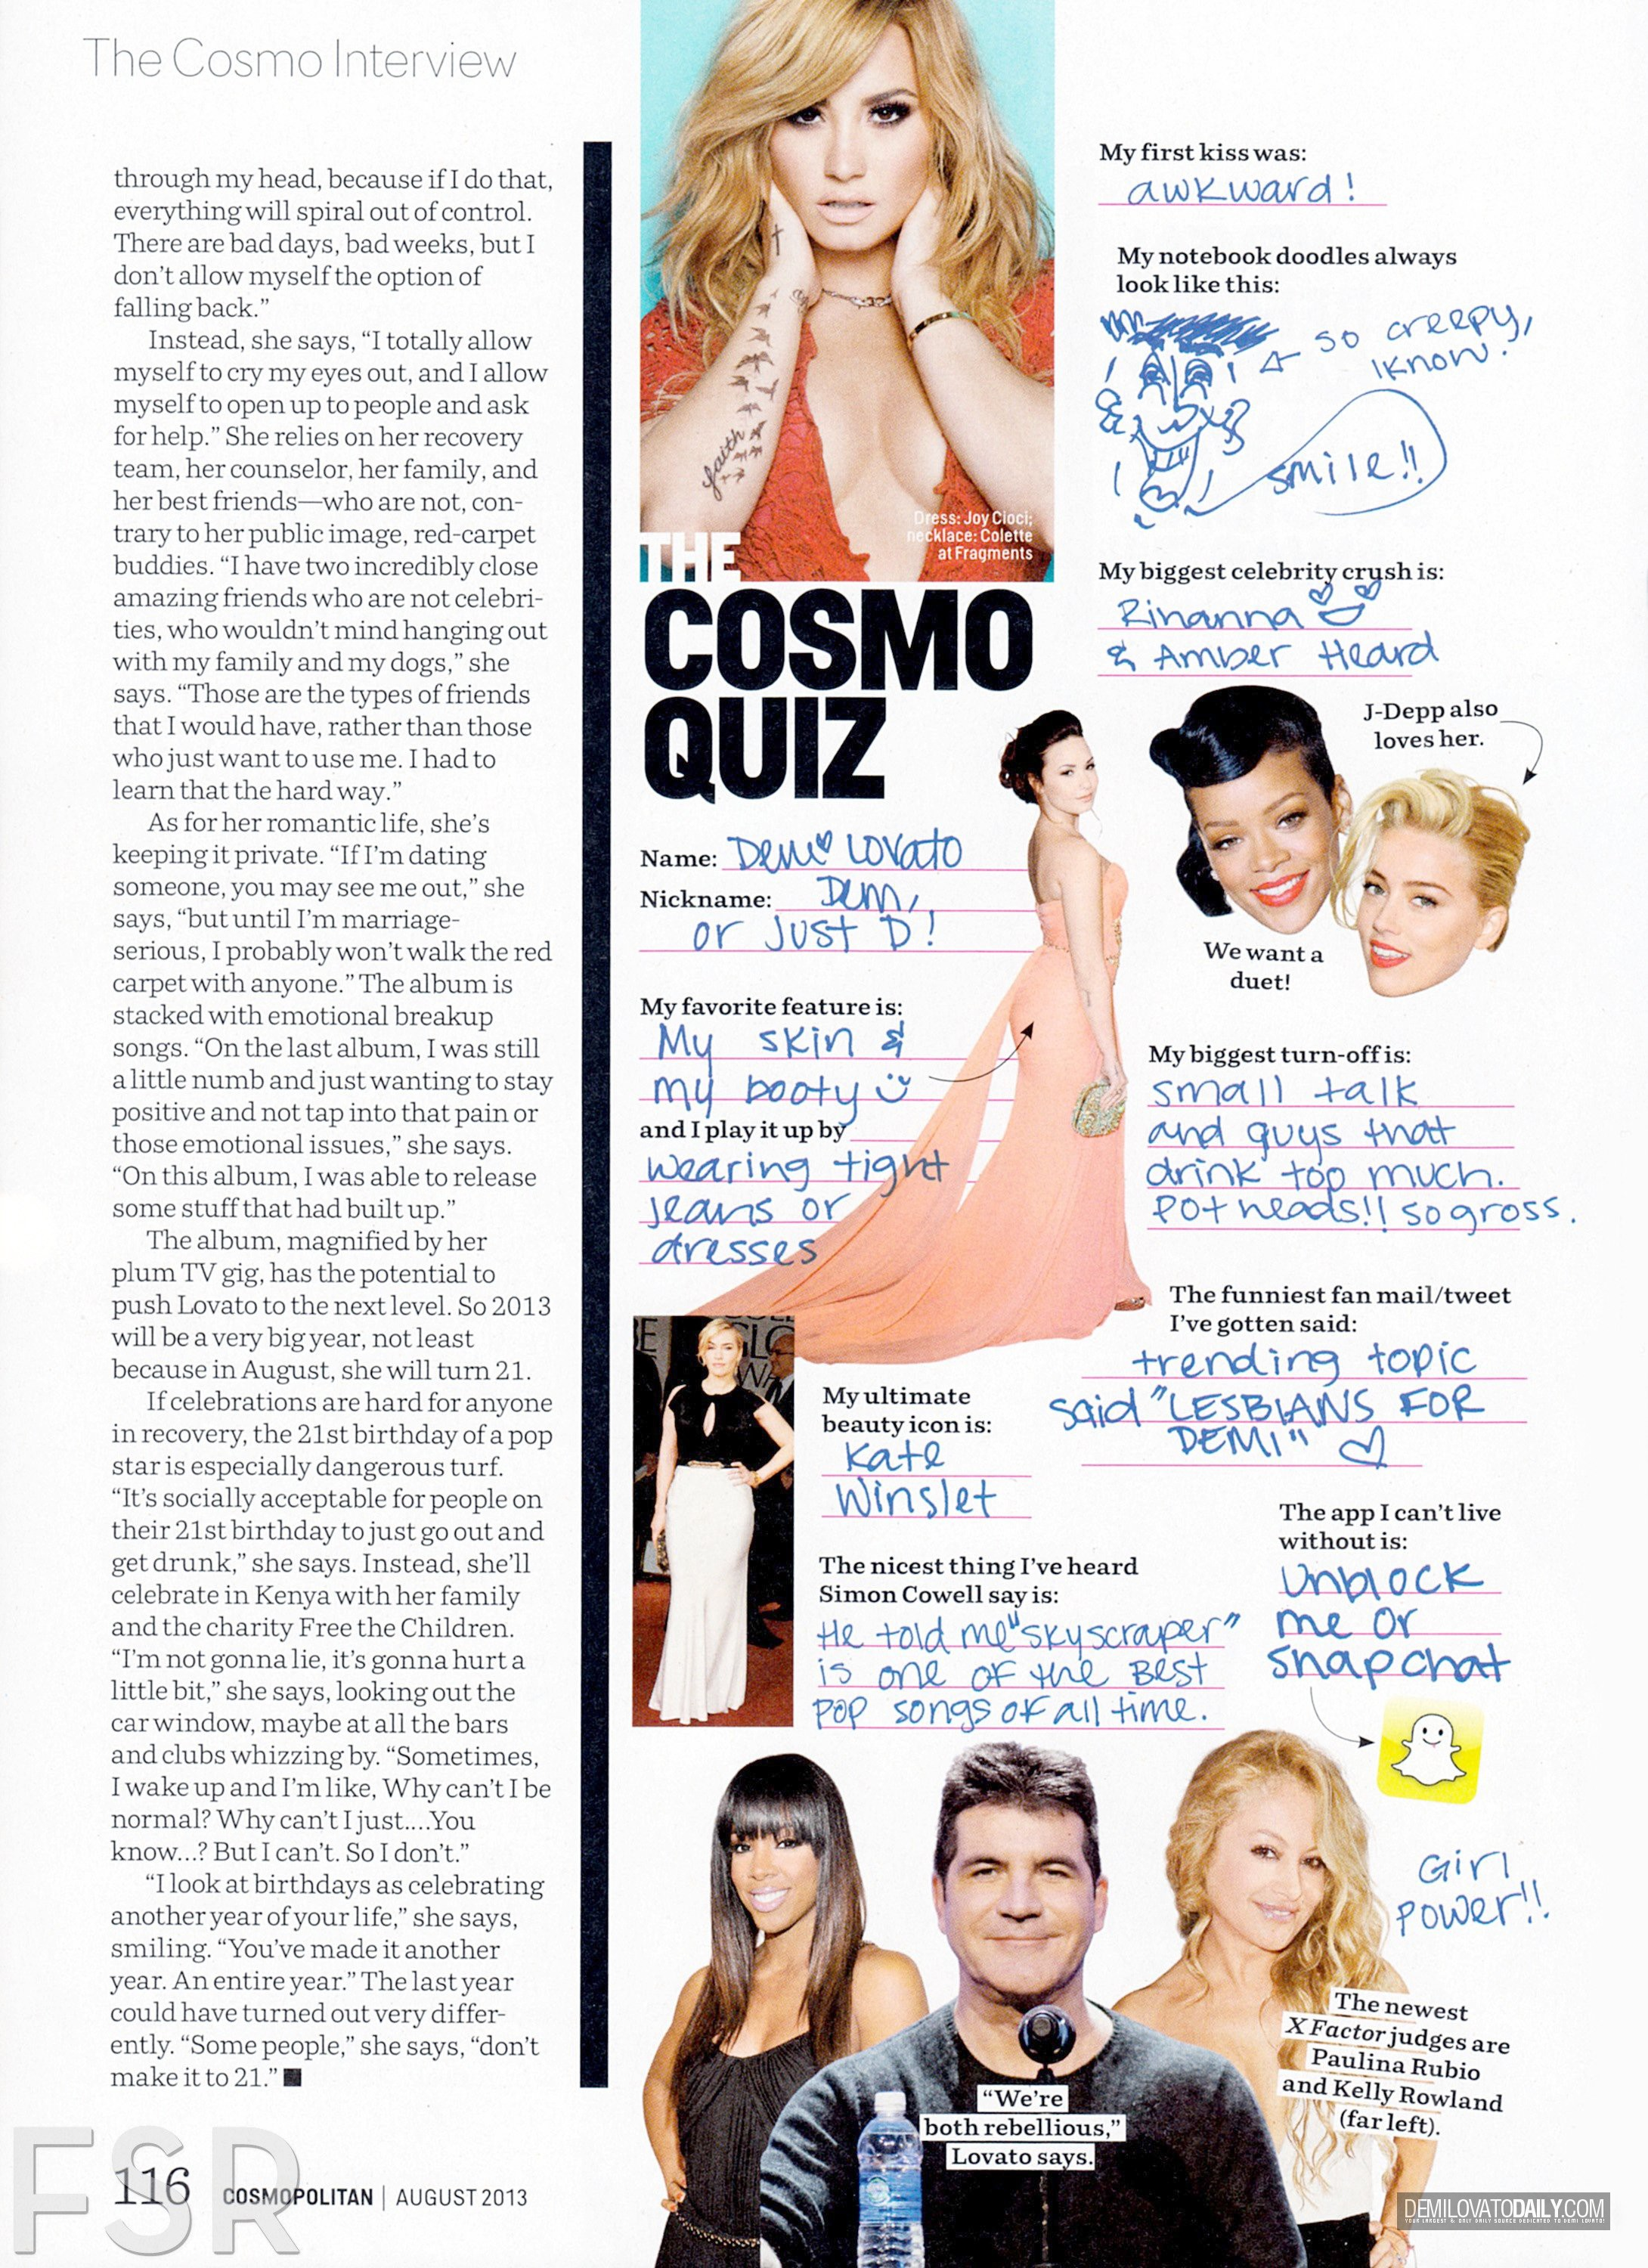 Demi - Magazine Scans 2013 - 'Cosmopolitan' August 2013